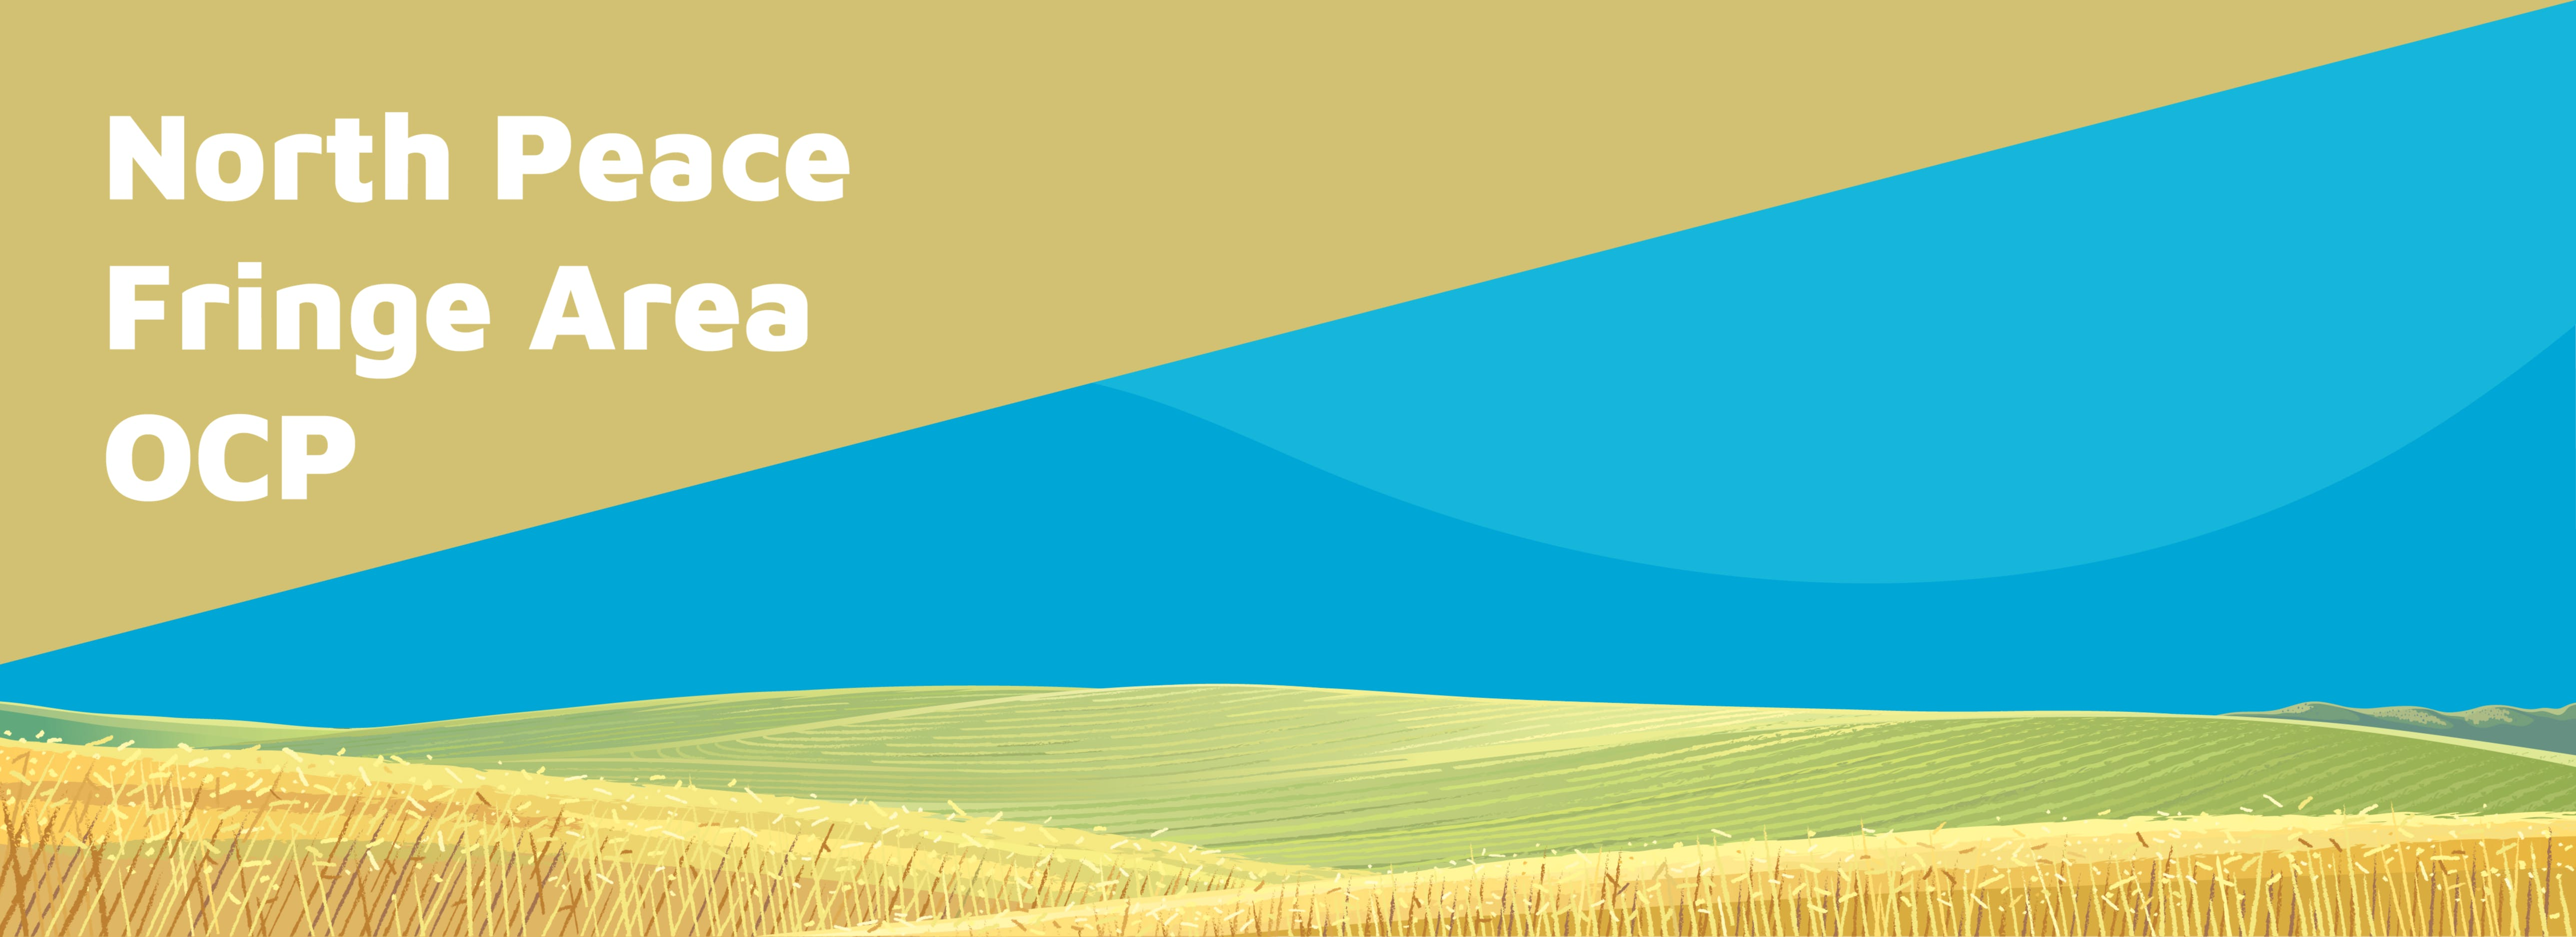 """banner with a vast open farmland scene with a blue sky """"north peace fringe area OCP"""" written on the top left"""